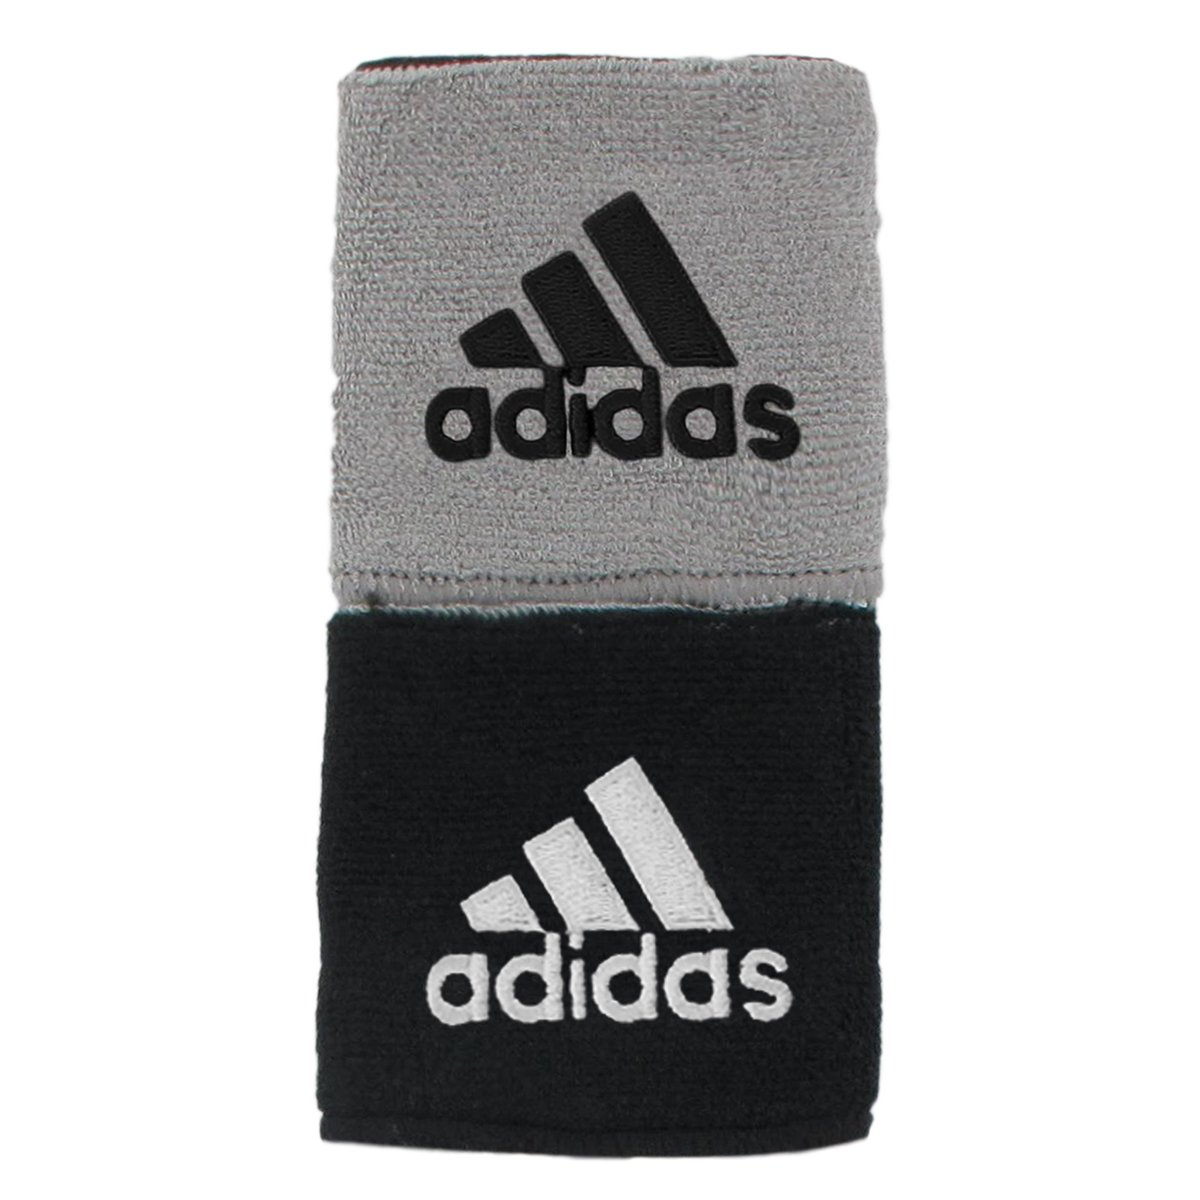 adidas Interval Reversible Wristband, Black/White / Aluminum 2/Black, One Size Fits All by adidas (Image #1)